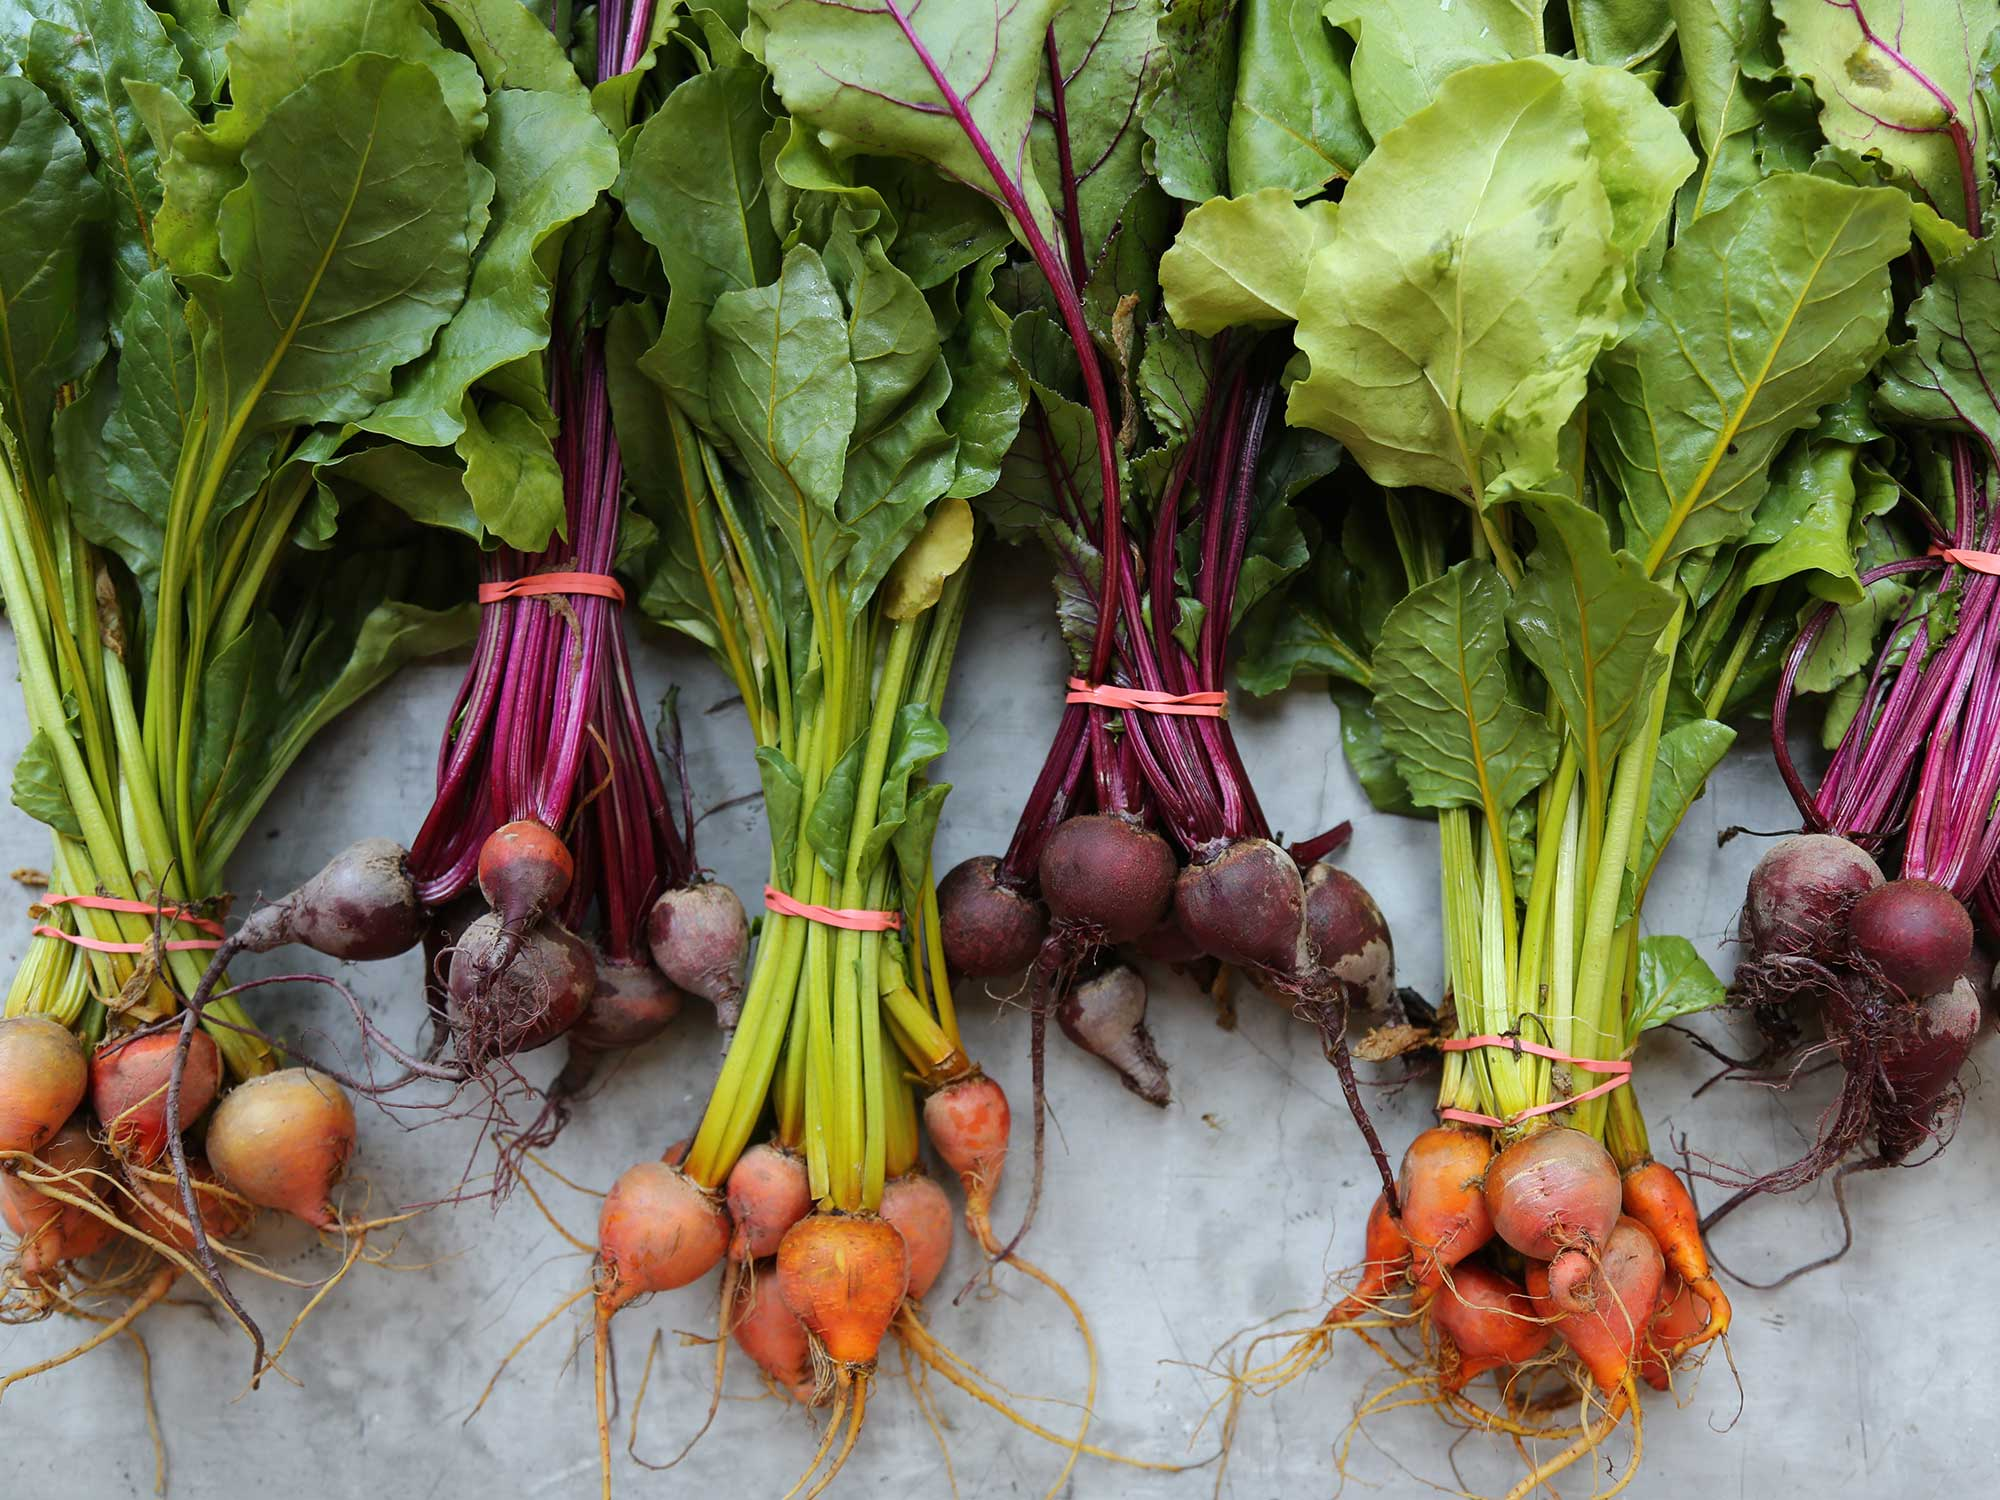 Beet-Haters: Spring Beets May Change Your Mind